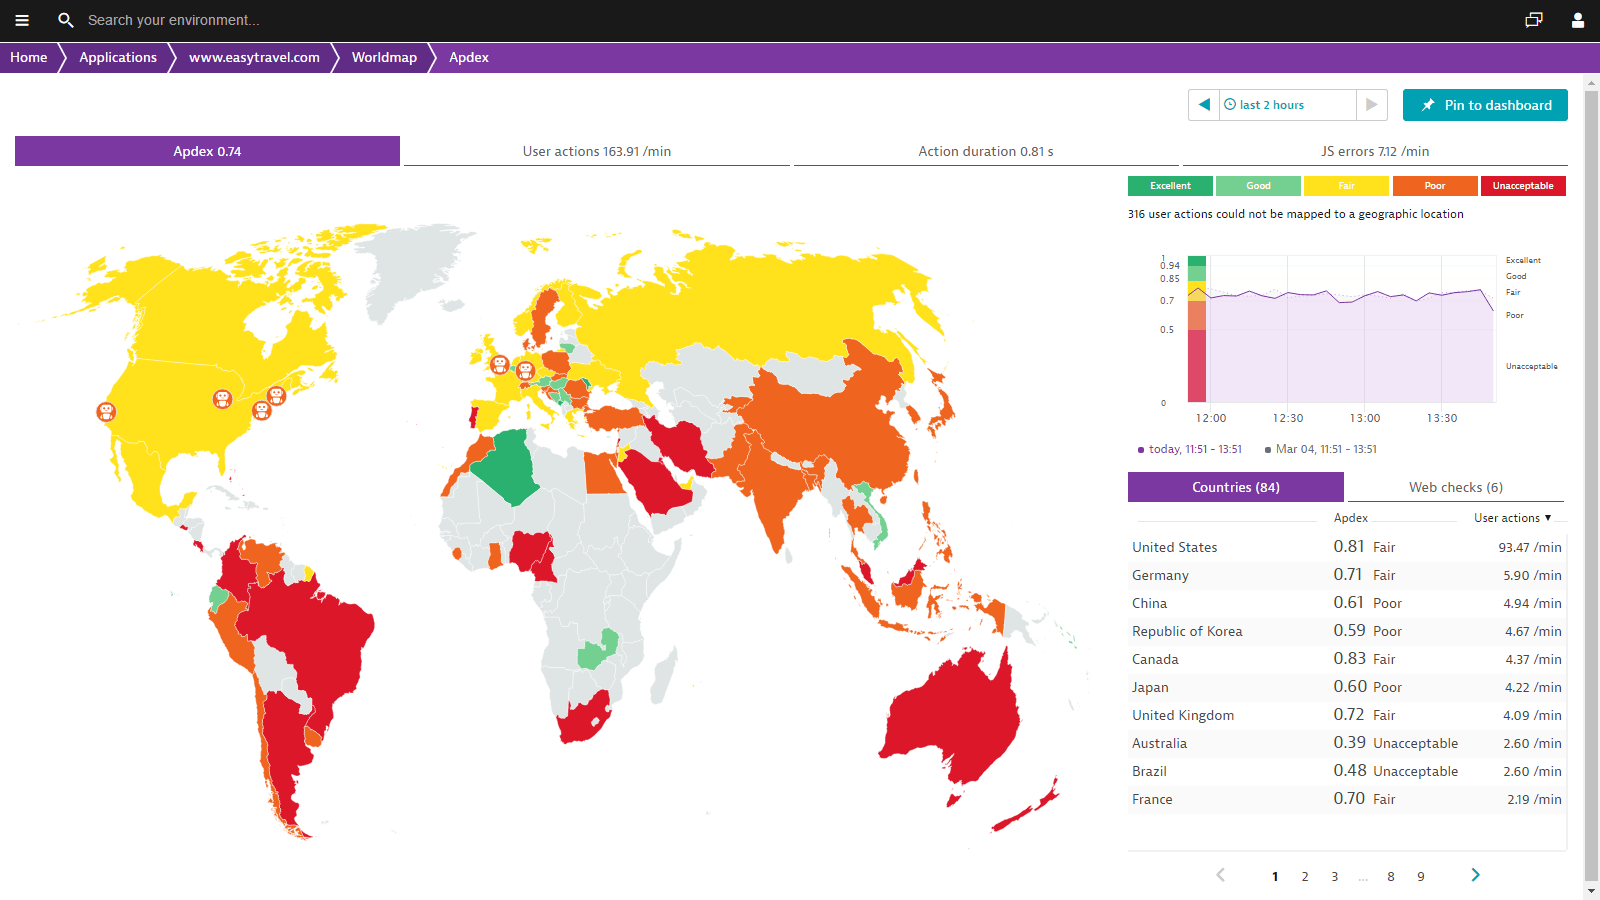 Dynatrace provides detailed insight into your users' browsing experience worldwide